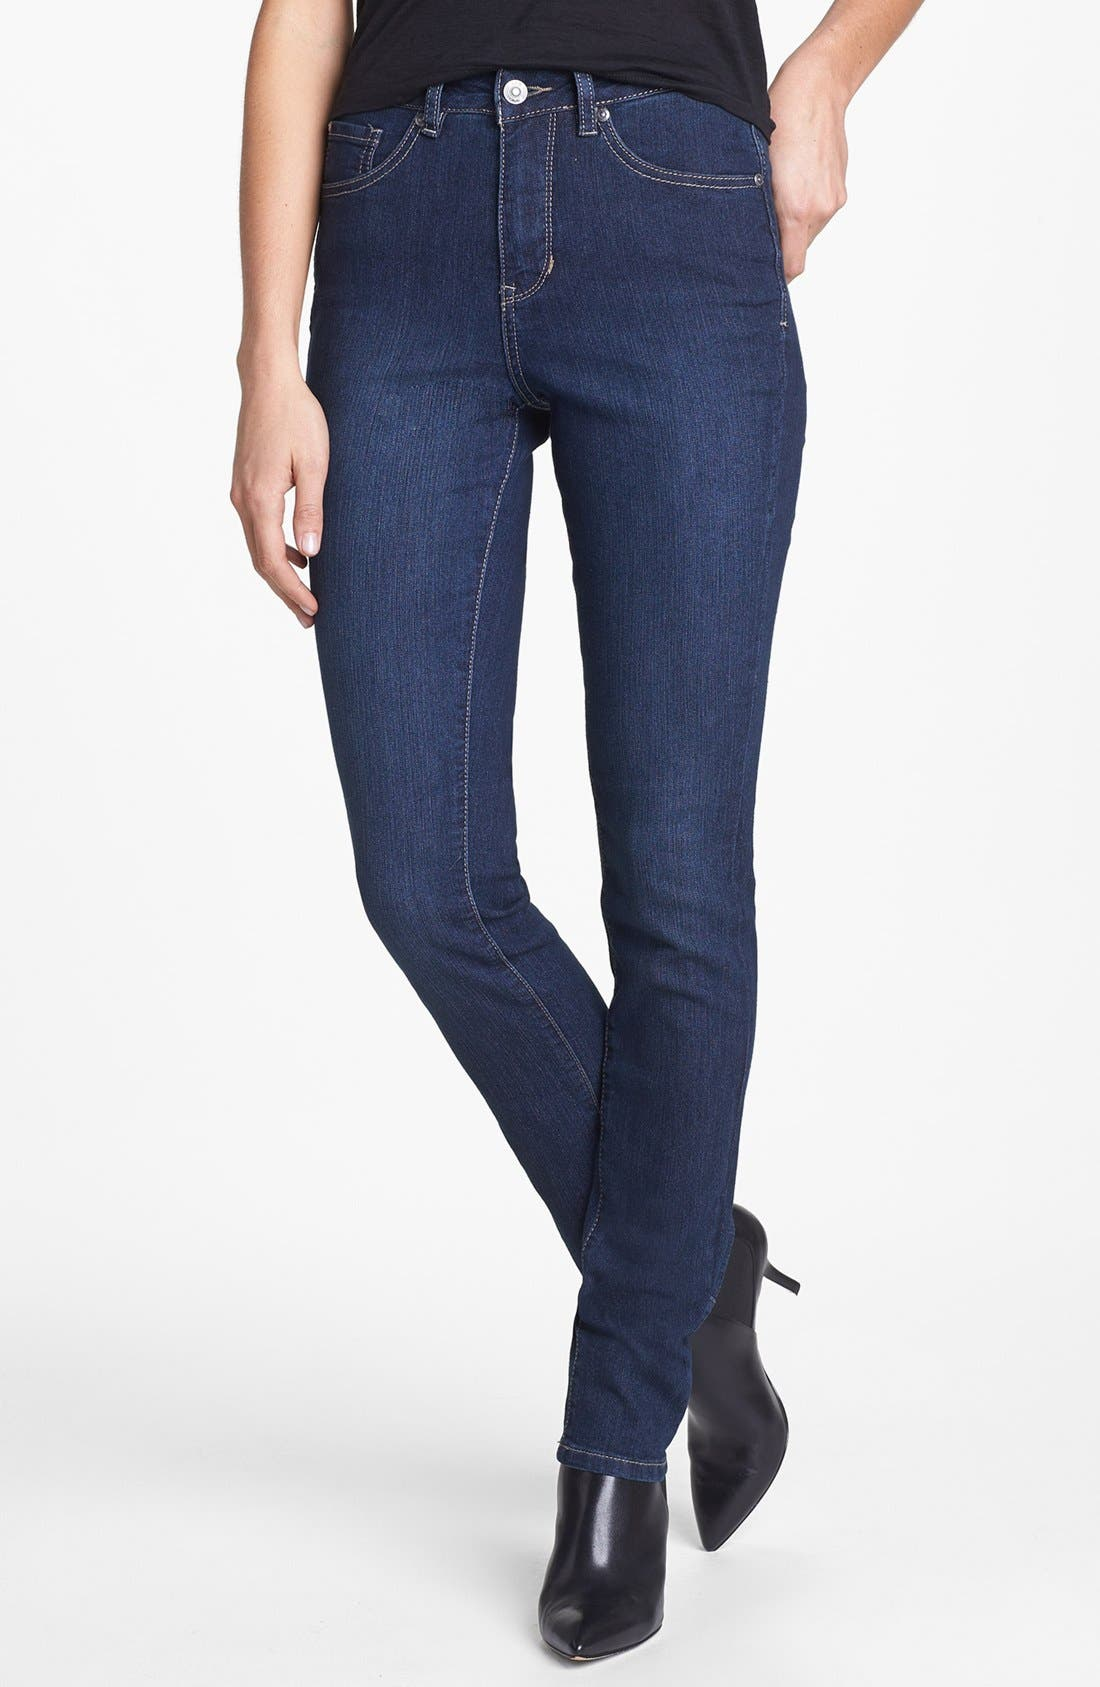 Main Image - Jag Jeans 'Holly' Slim Fit Jeans (Blue Shadow)